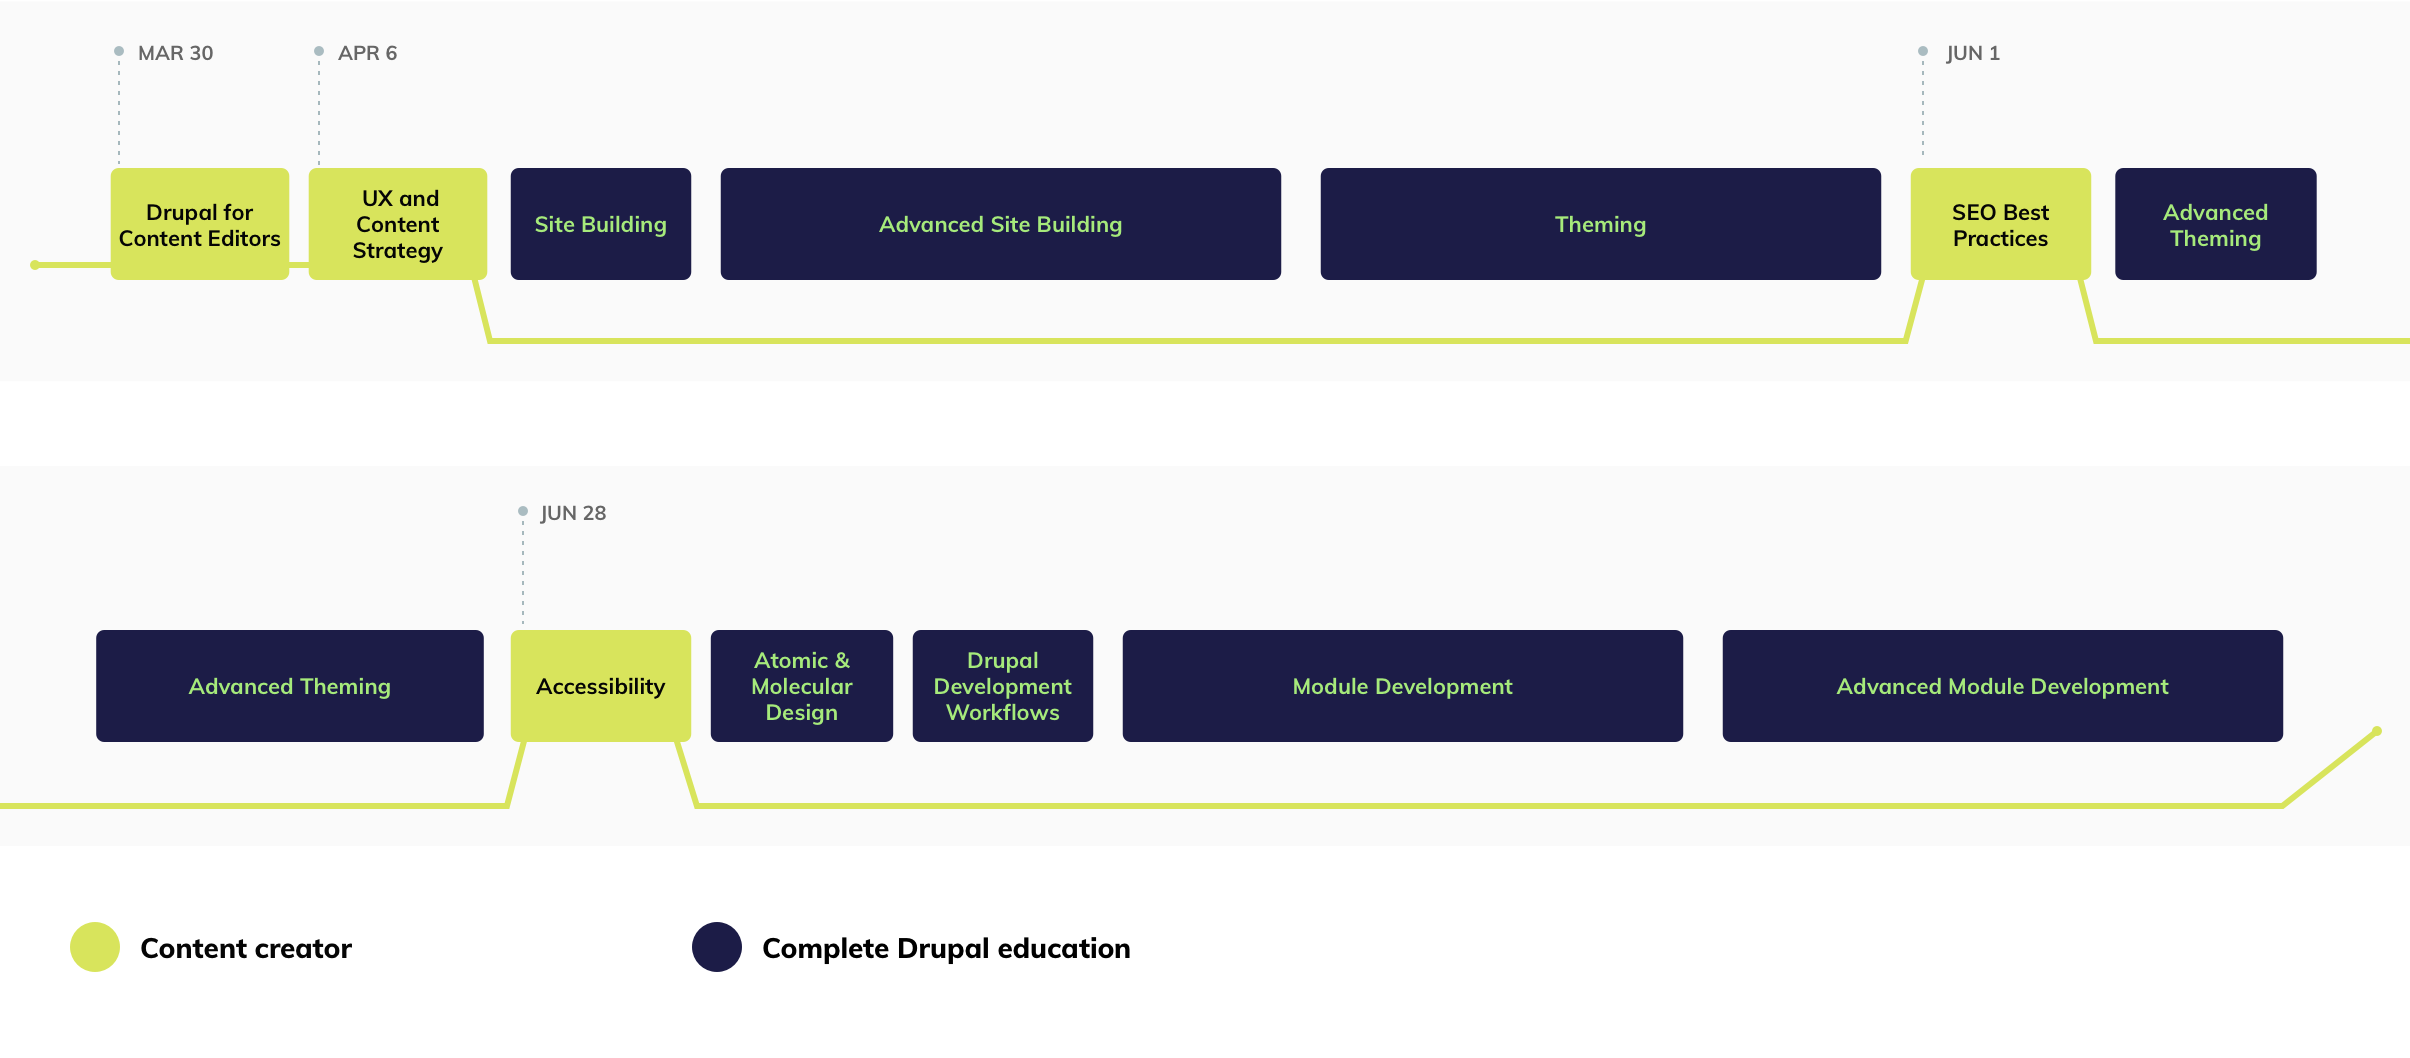 Drupal Content Creator Track graph showing courses and dates in order